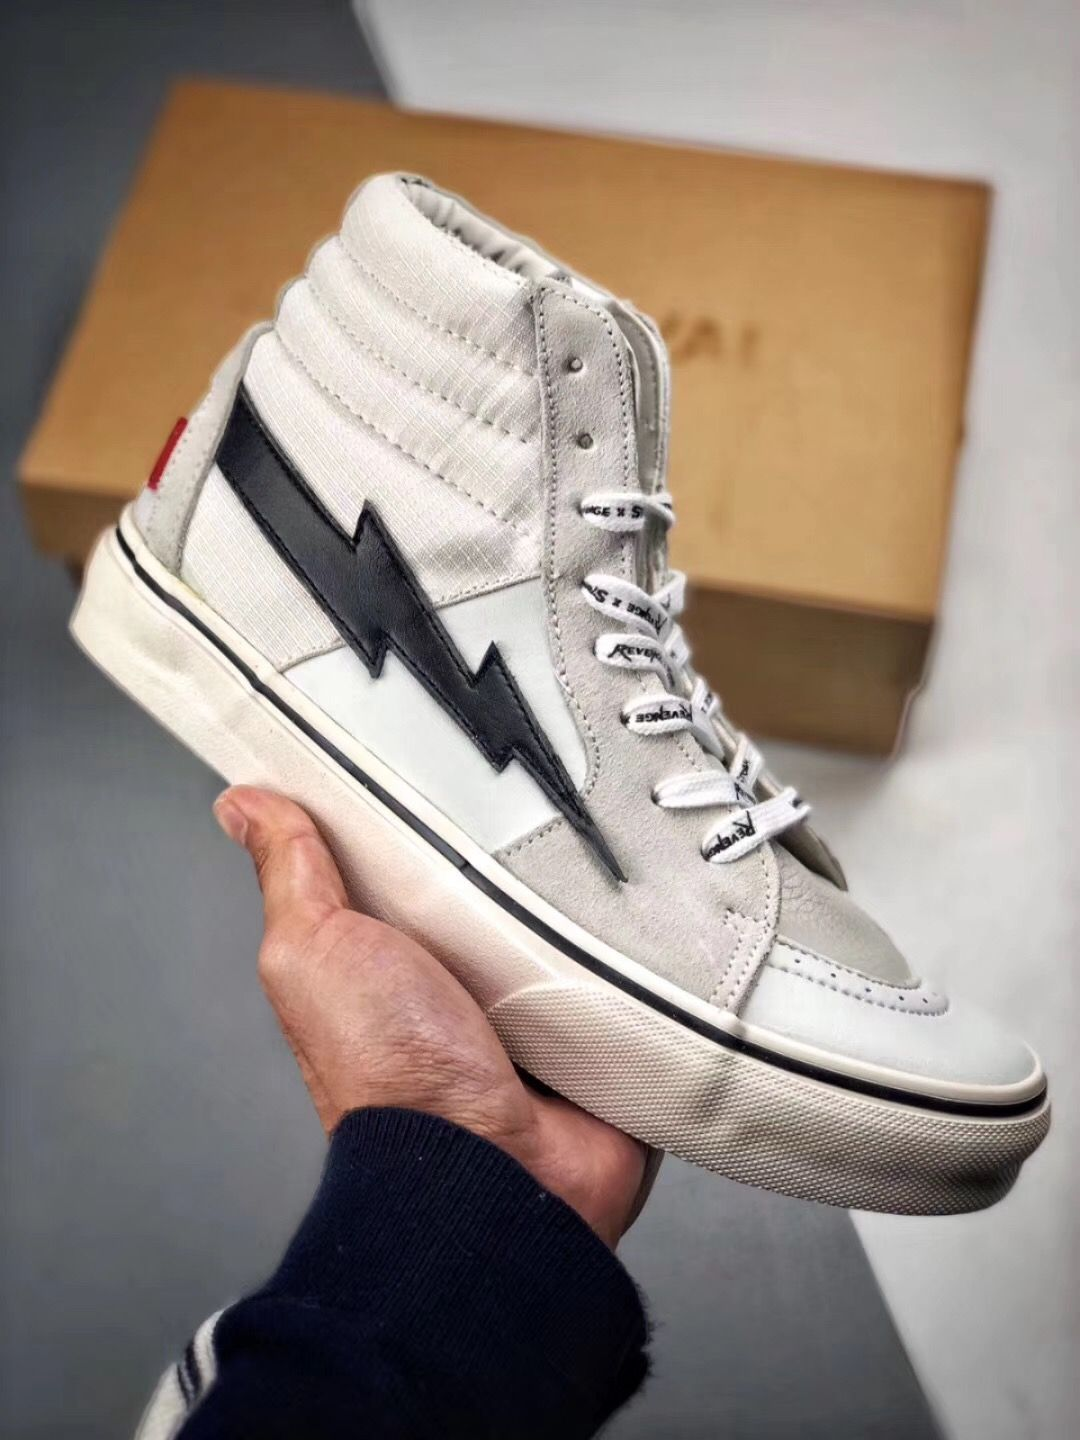 59db6d4a790 OFF-WHITE X Vans Sk8-Hi x Revenge Storm X the Remade | OFF-WHITE in 2019